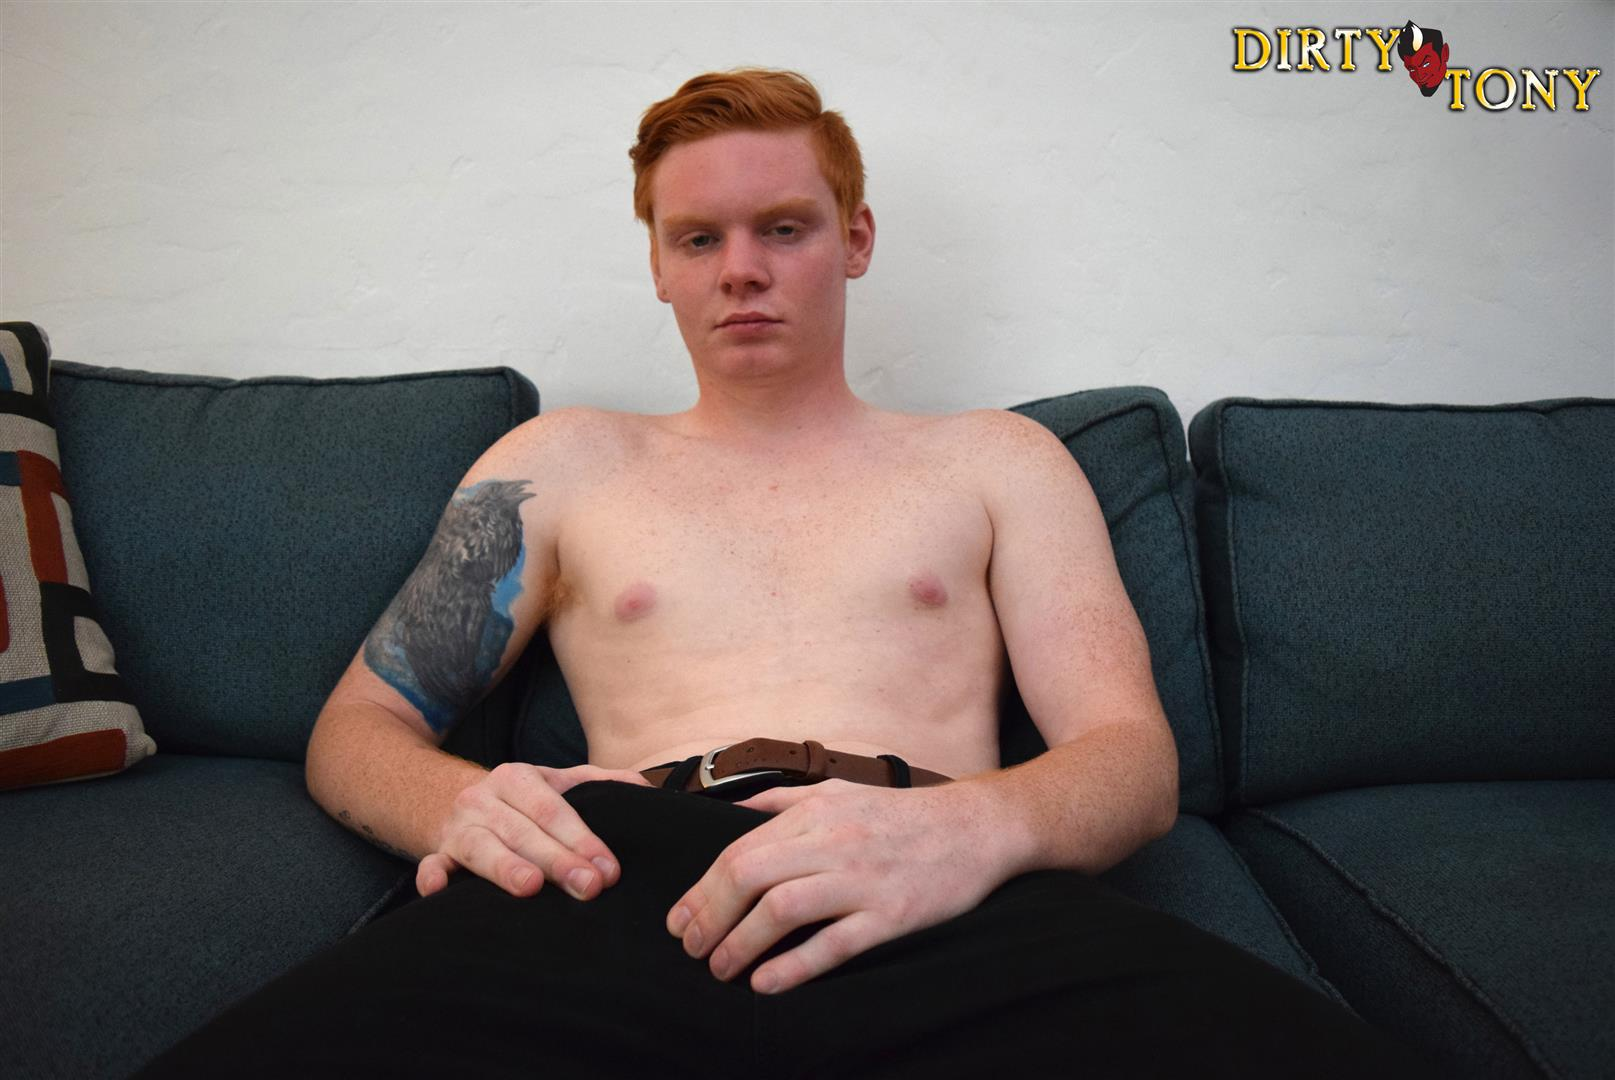 Dirty Tony Max Breeker Redheaded Twink Masturbation Amateur Gay Porn 02 Bisexual 19 Year Old Redheaded Twink Auditions For Gay Porn